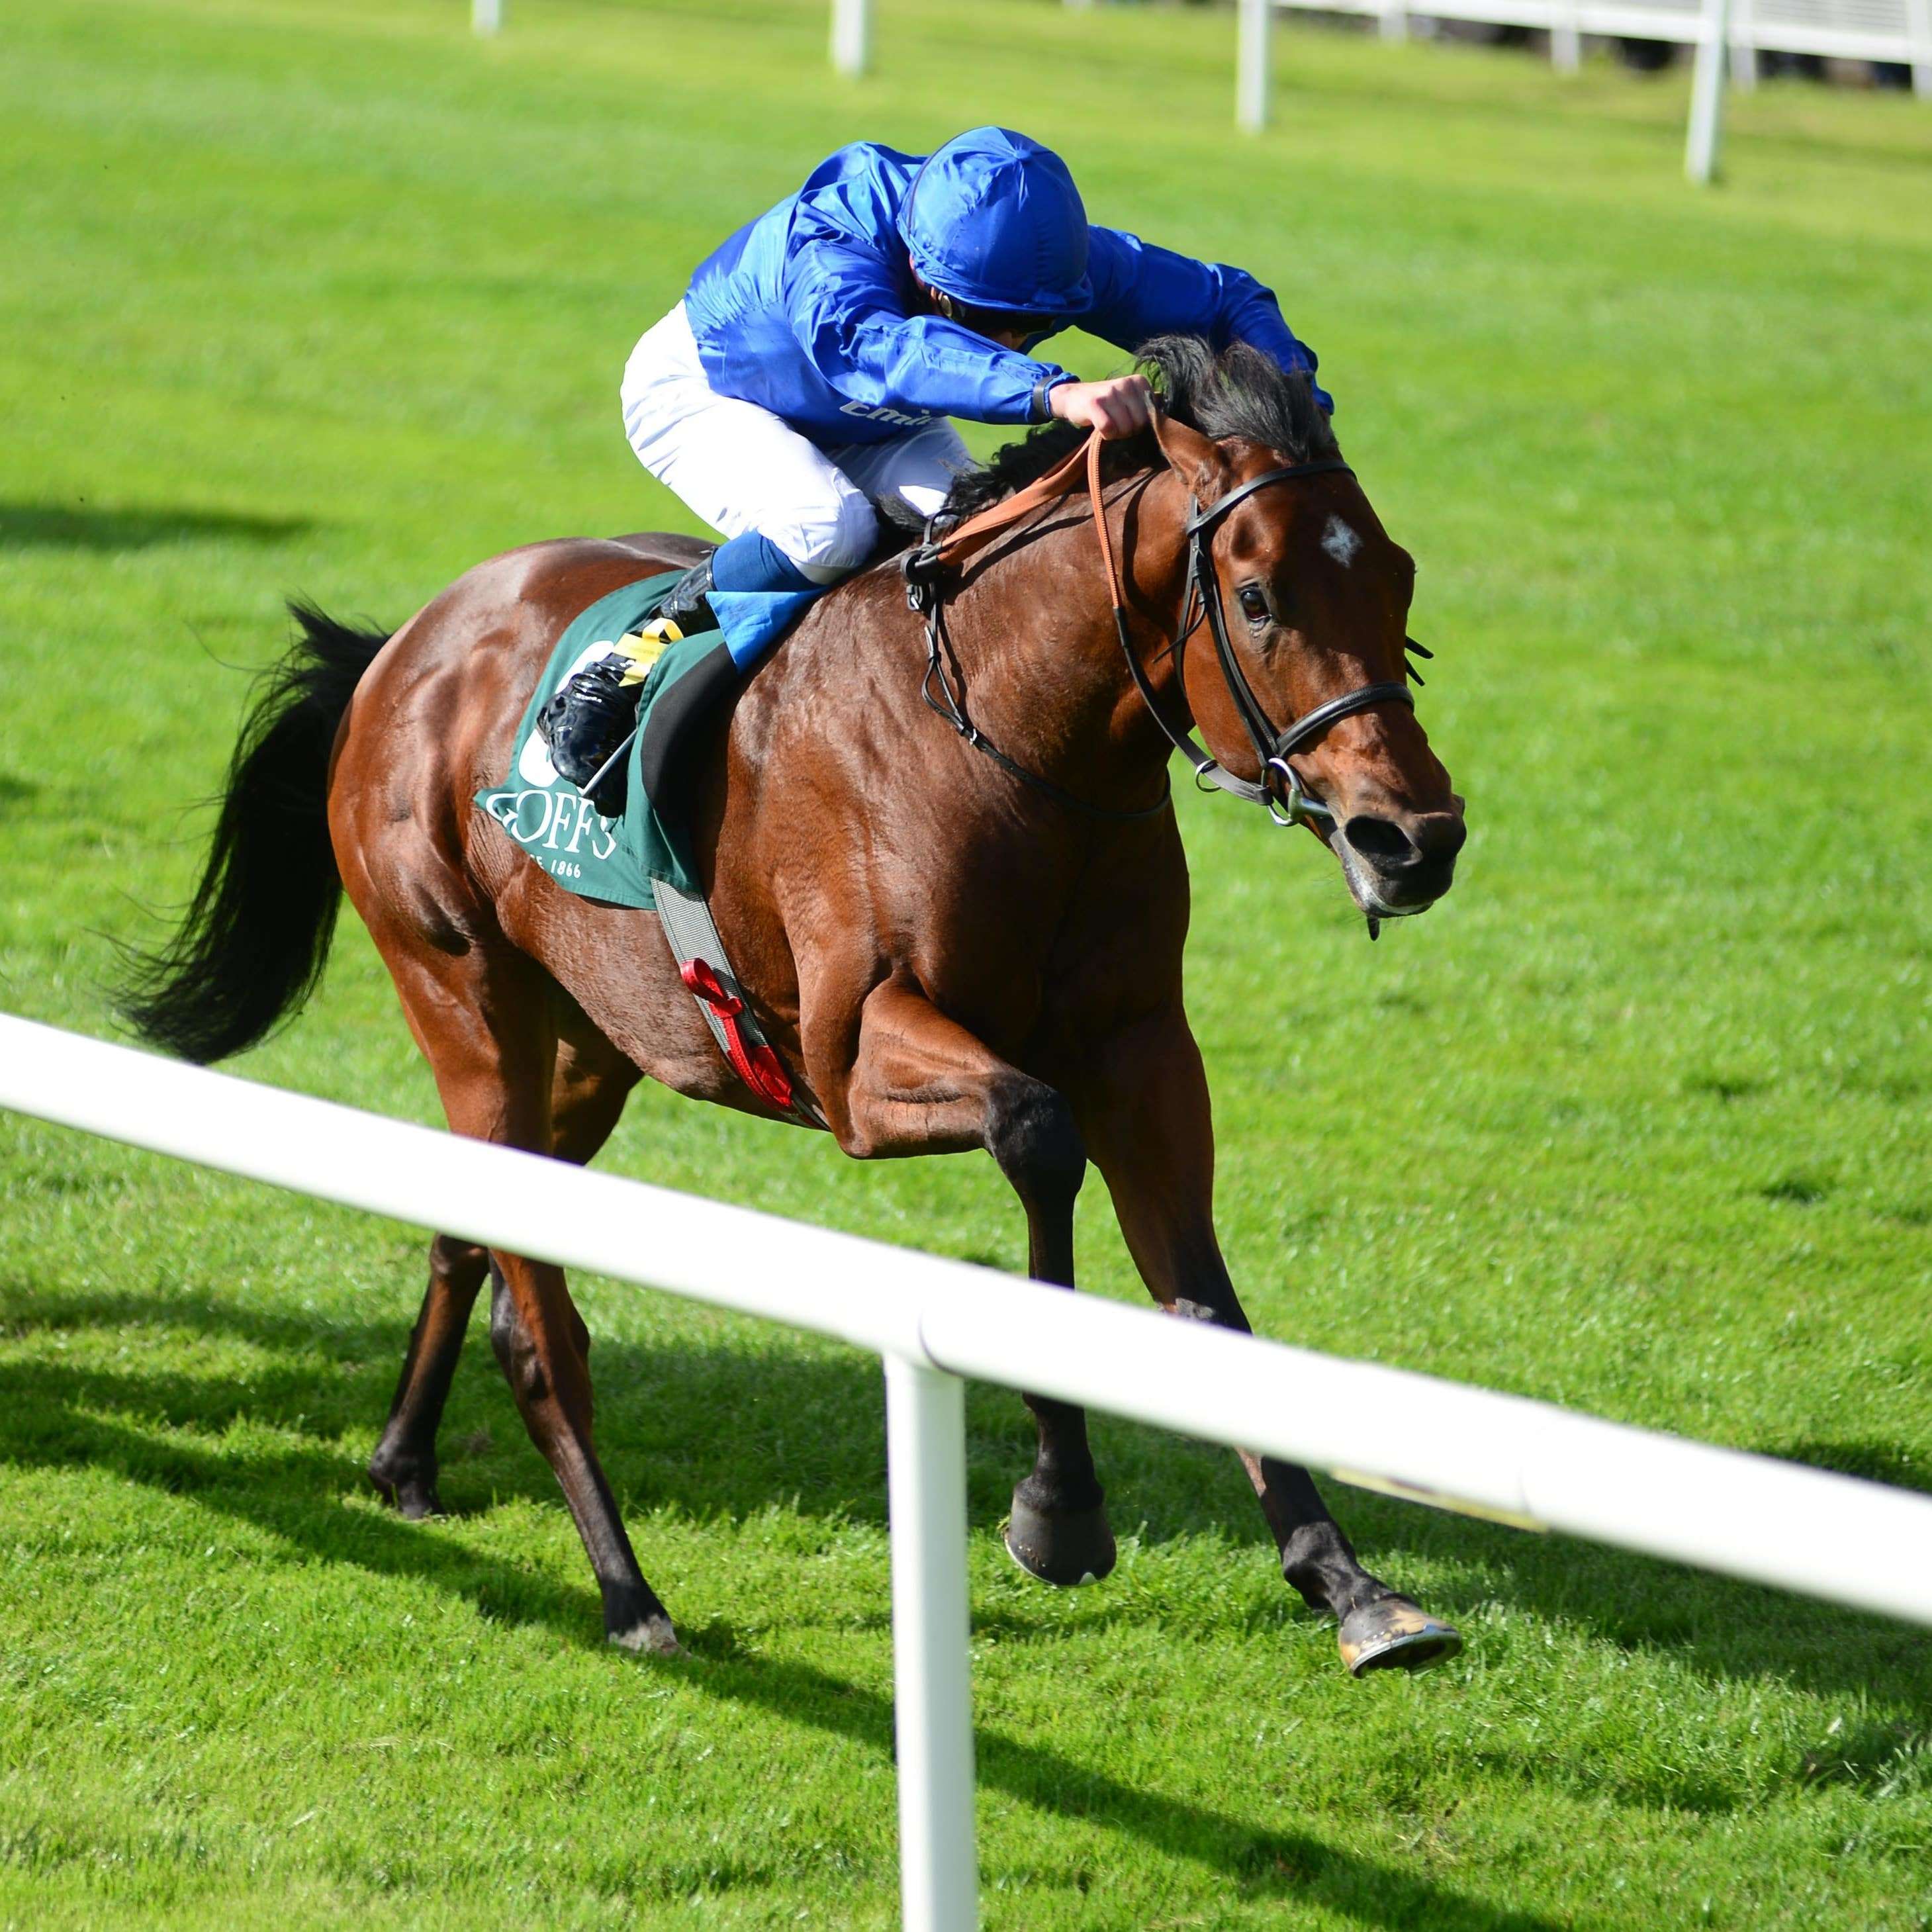 Quorto has been ruled out of the 2000 Guineas